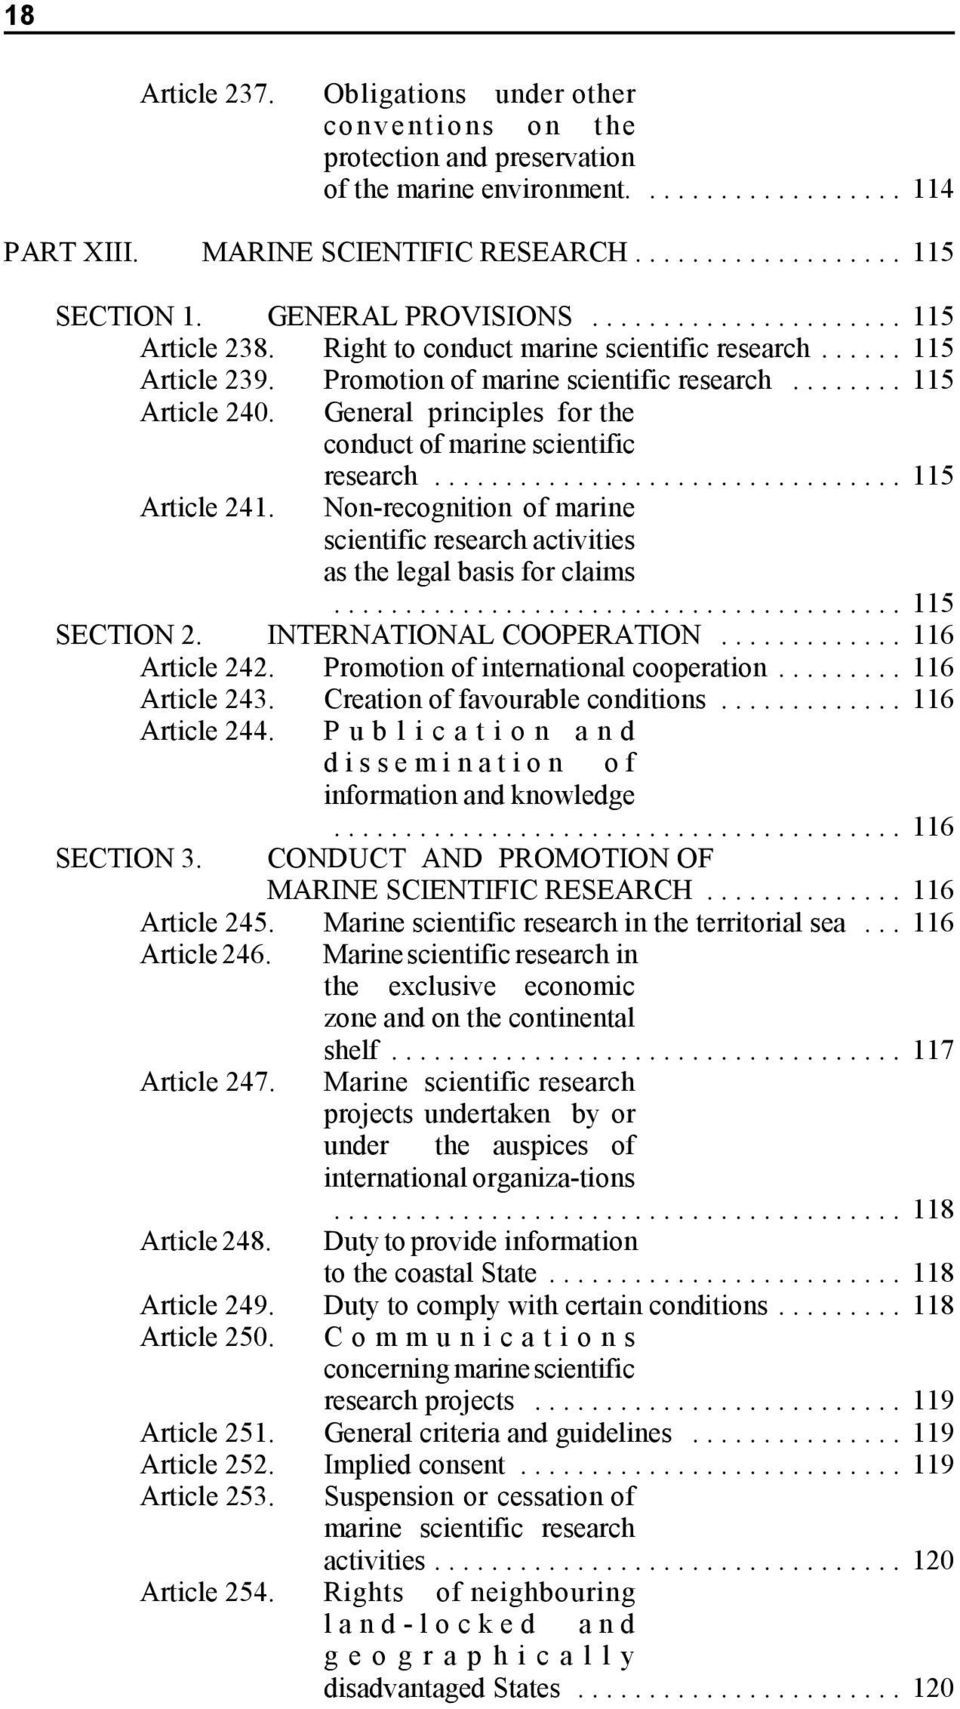 General principles for the conduct of marine scientific Article 241. research... 115 Non-recognition of marine scientific research activities as the legal basis for claims... 115 SECTION 2.